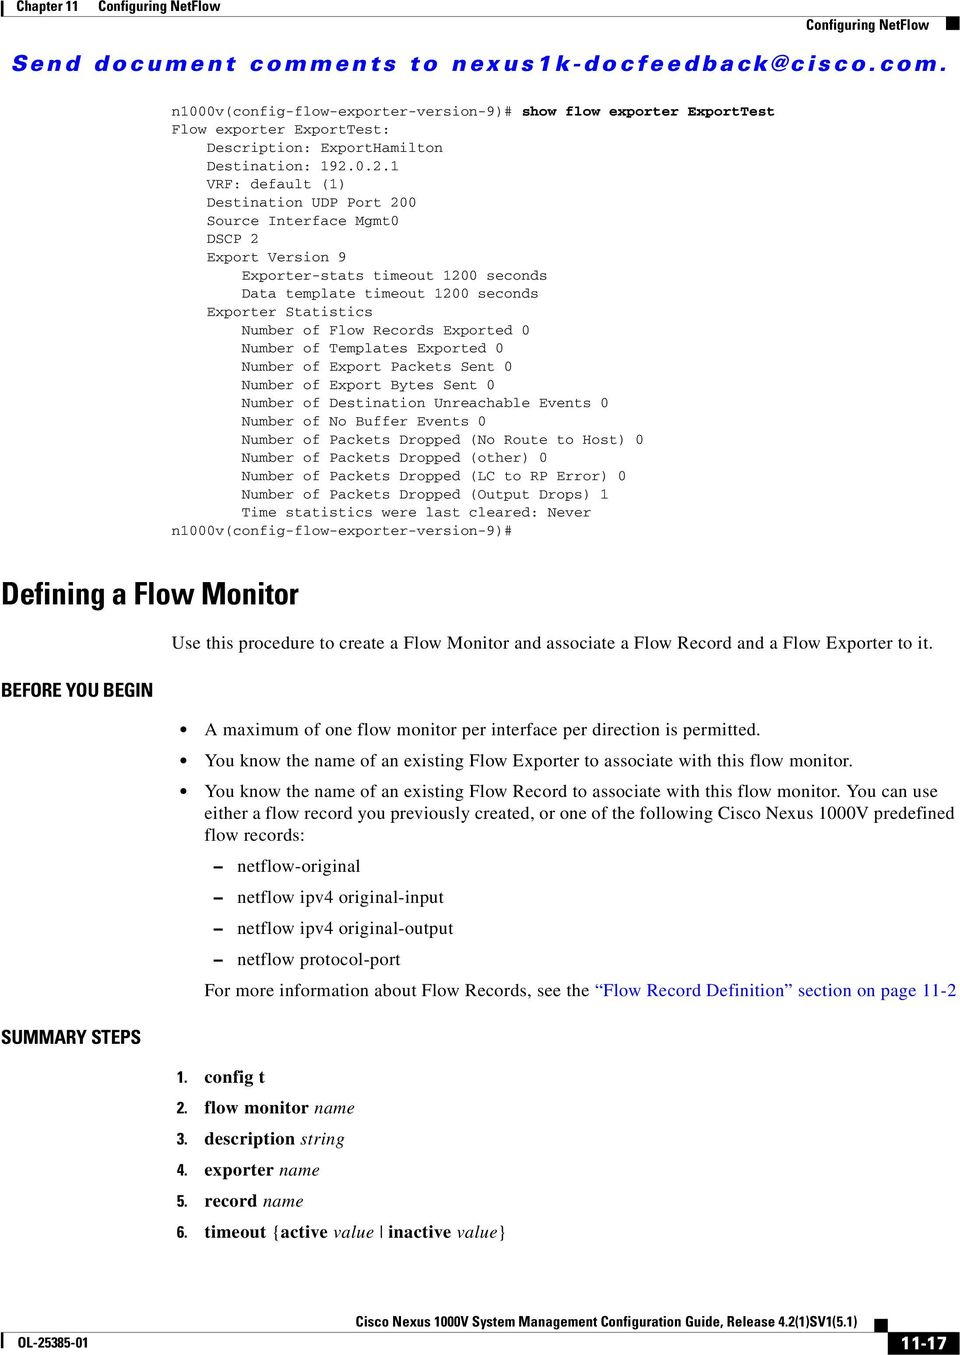 Configuring NetFlow  Information About NetFlow  Send